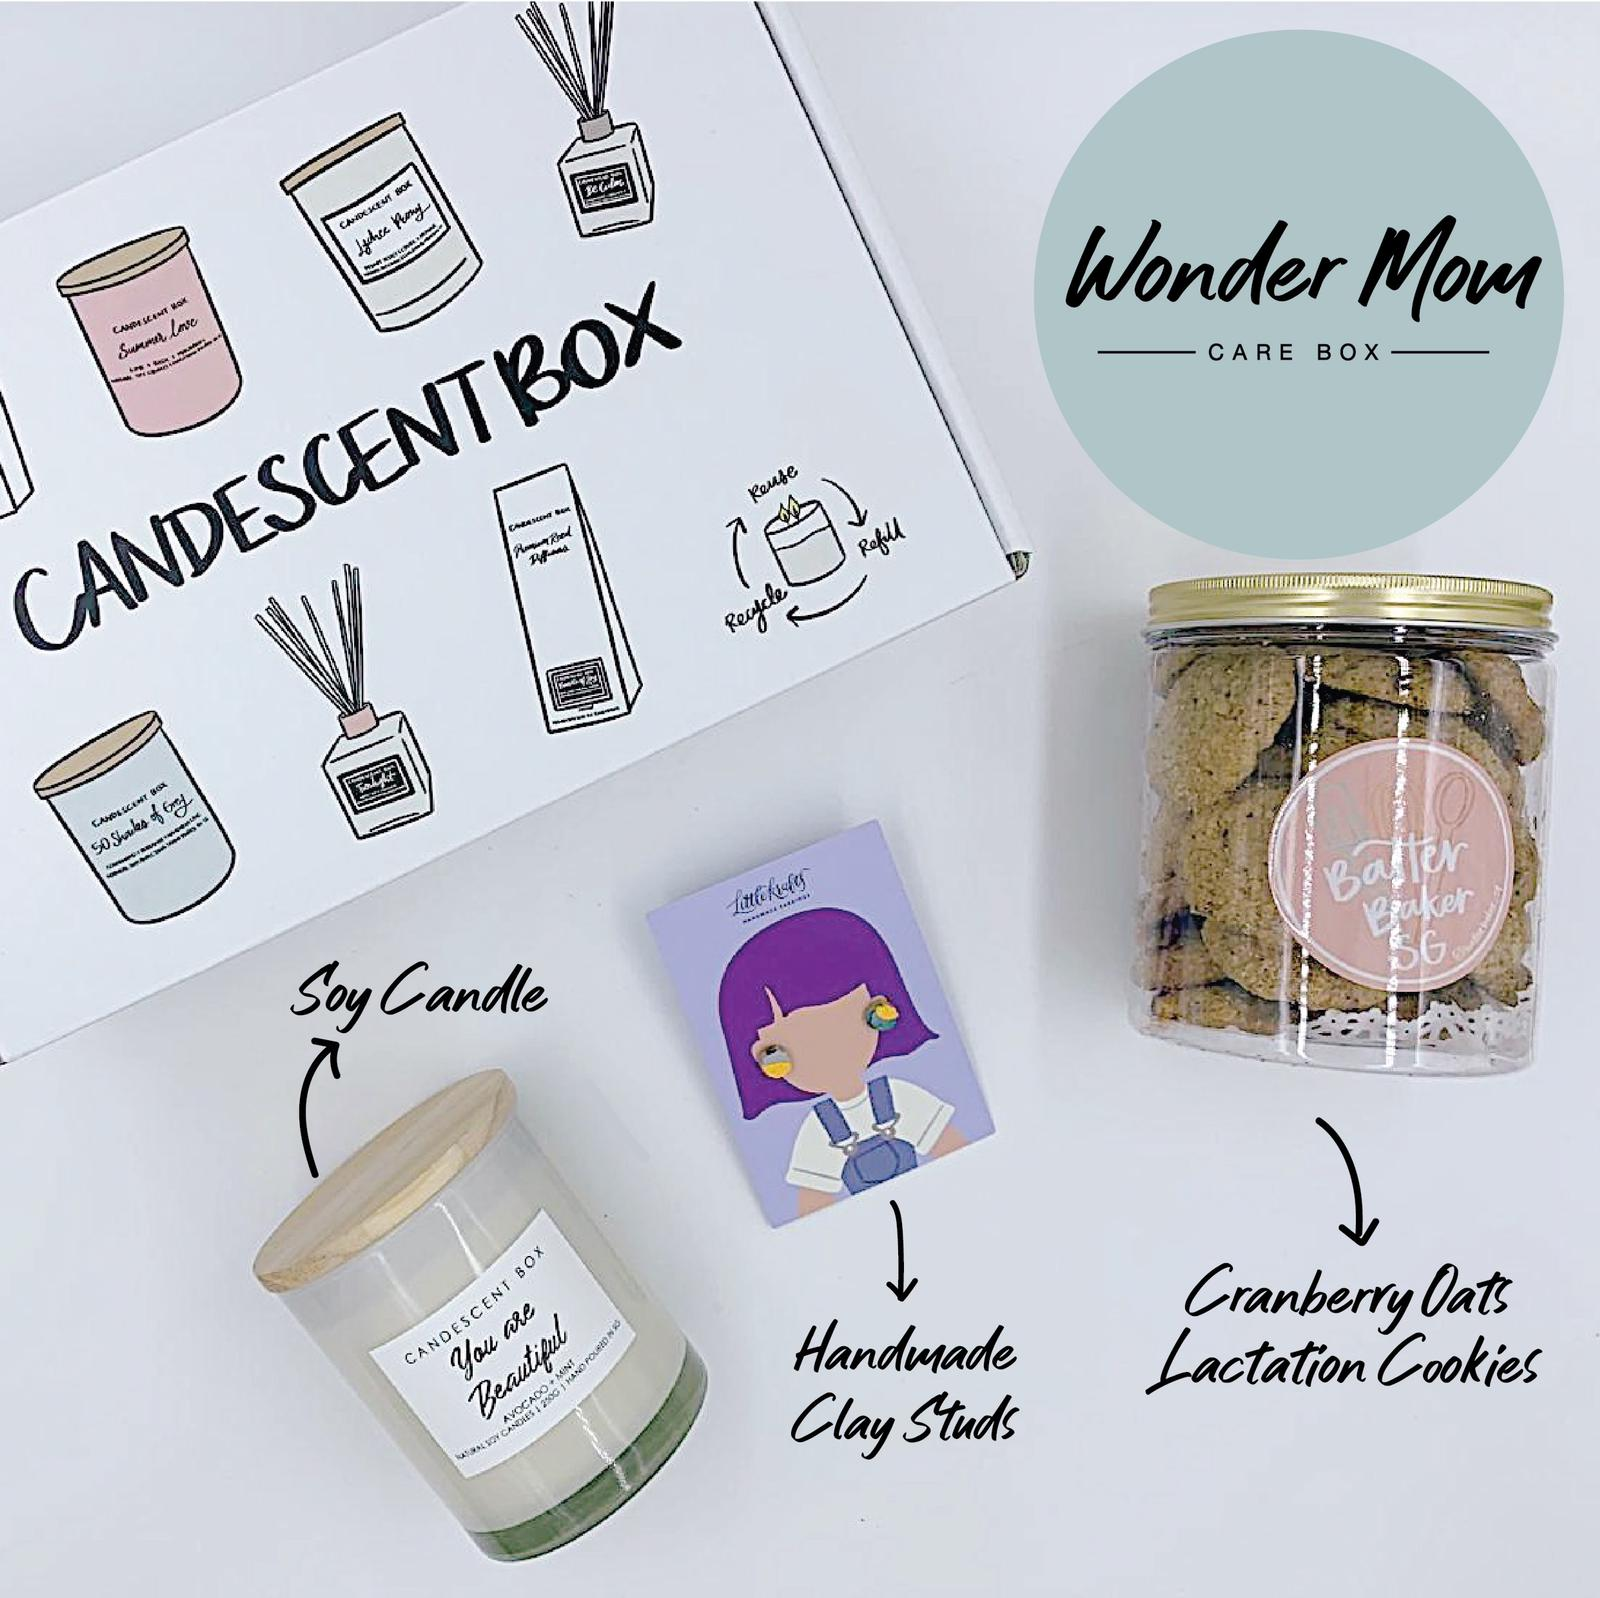 Wonder Mom Care Box